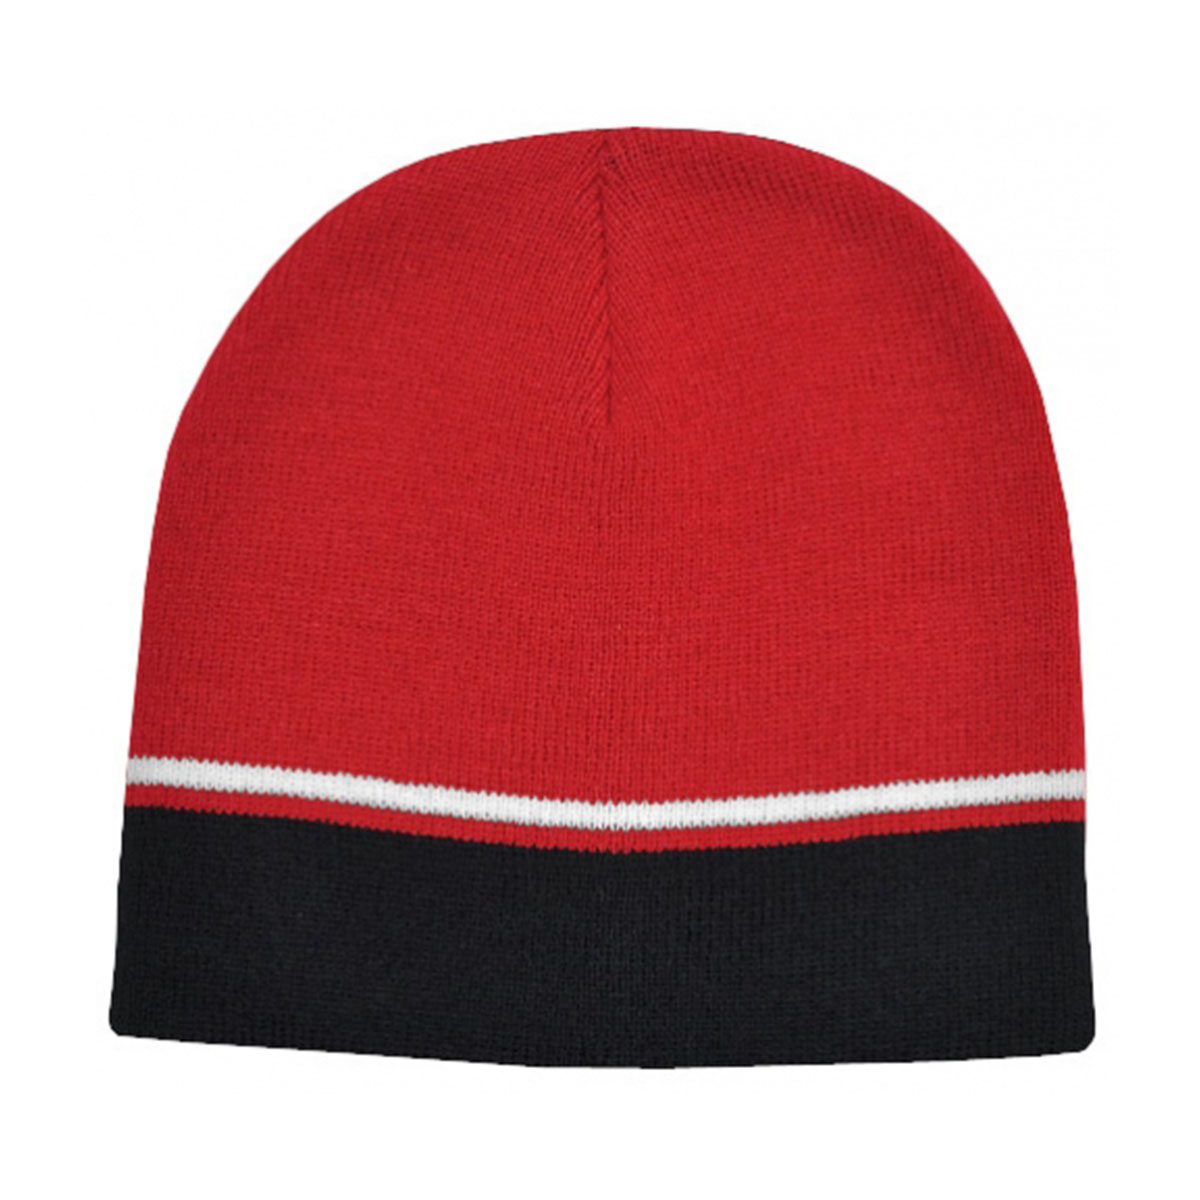 Two-Tone Beanie-Red / White / Black